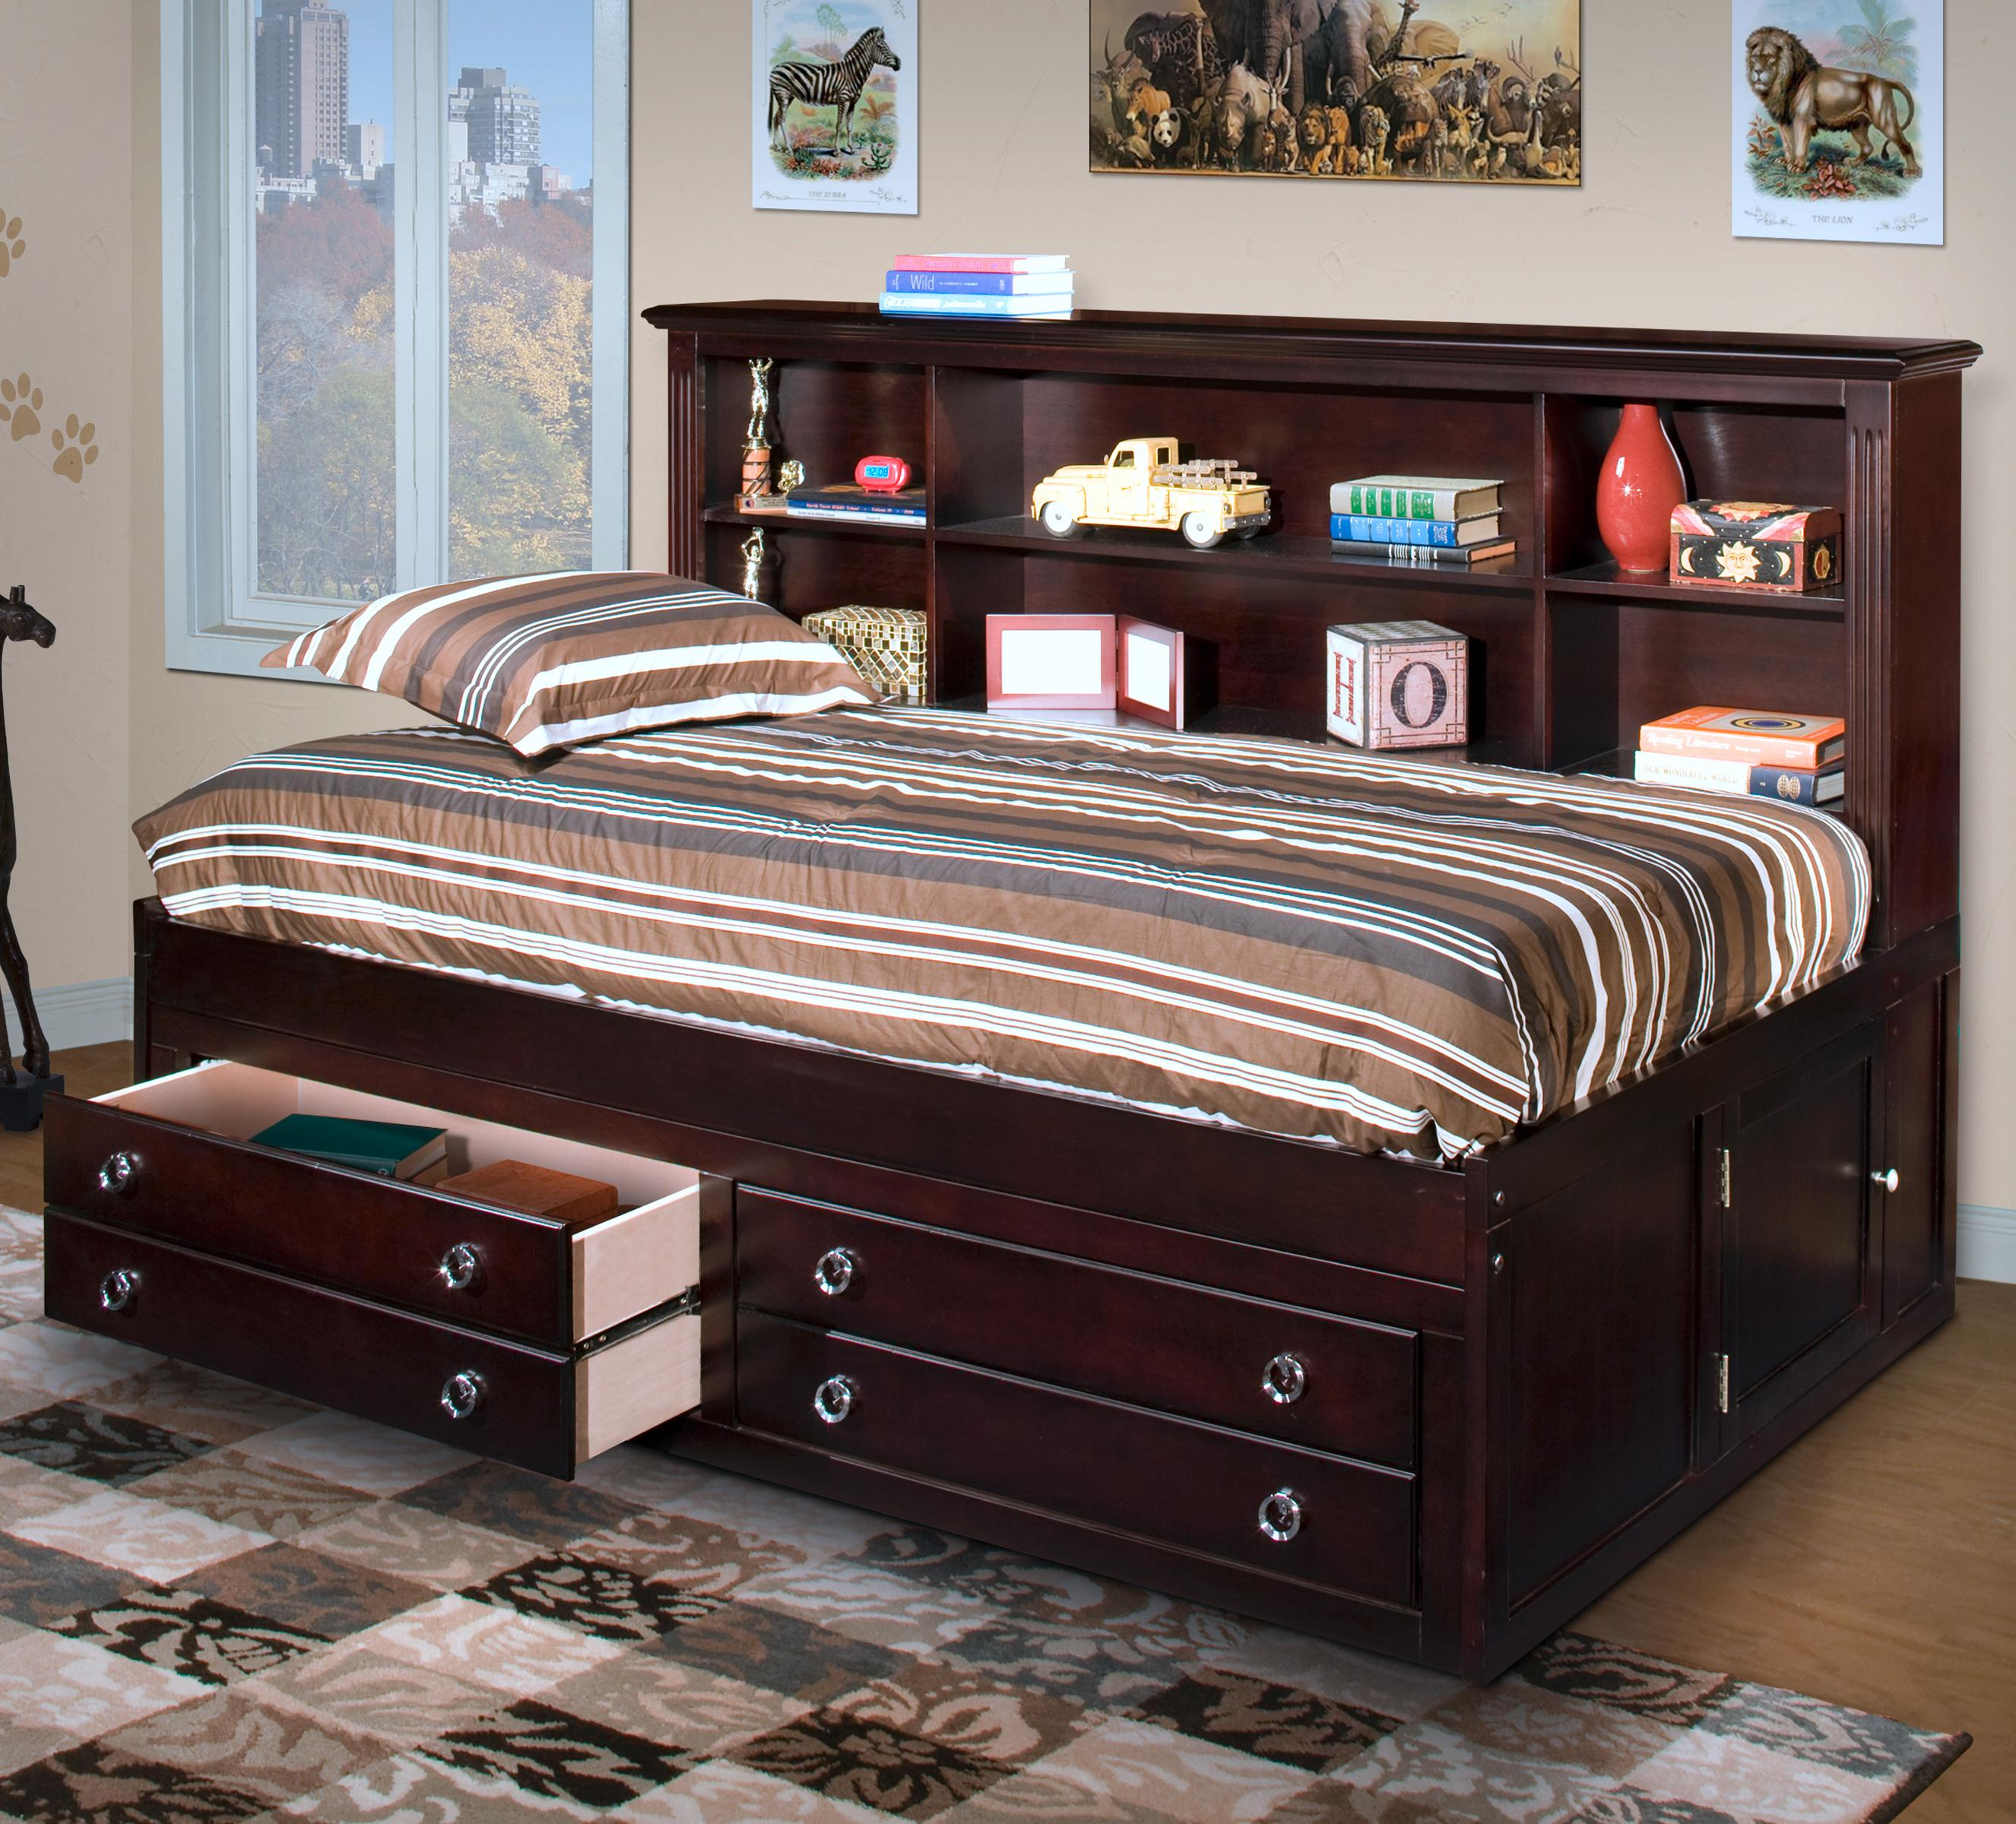 Victorian king storage beds with drawers - New Classic Victoria Twin Lounge Bed Item Number 05 623 512